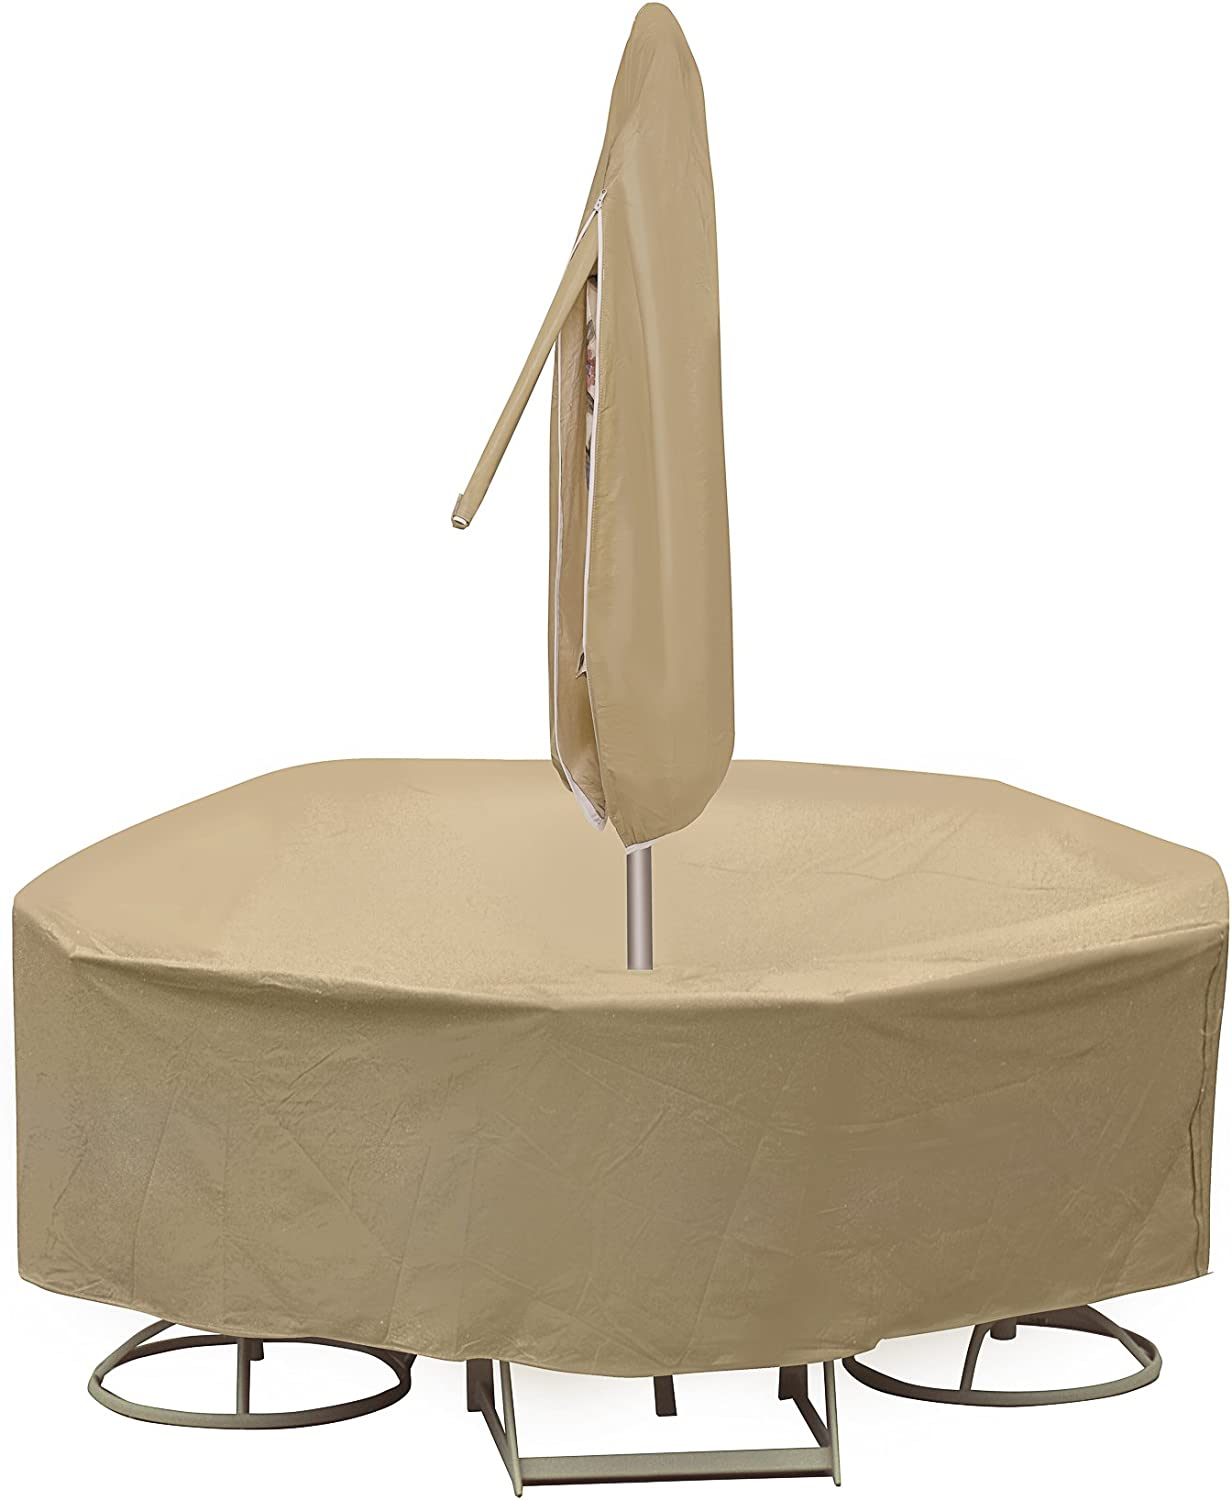 Protective Covers Weatherproof Patio Table and Chair Set Cover, 48 Inch x 54 Inch, Round Table, Tan - 1158-TN